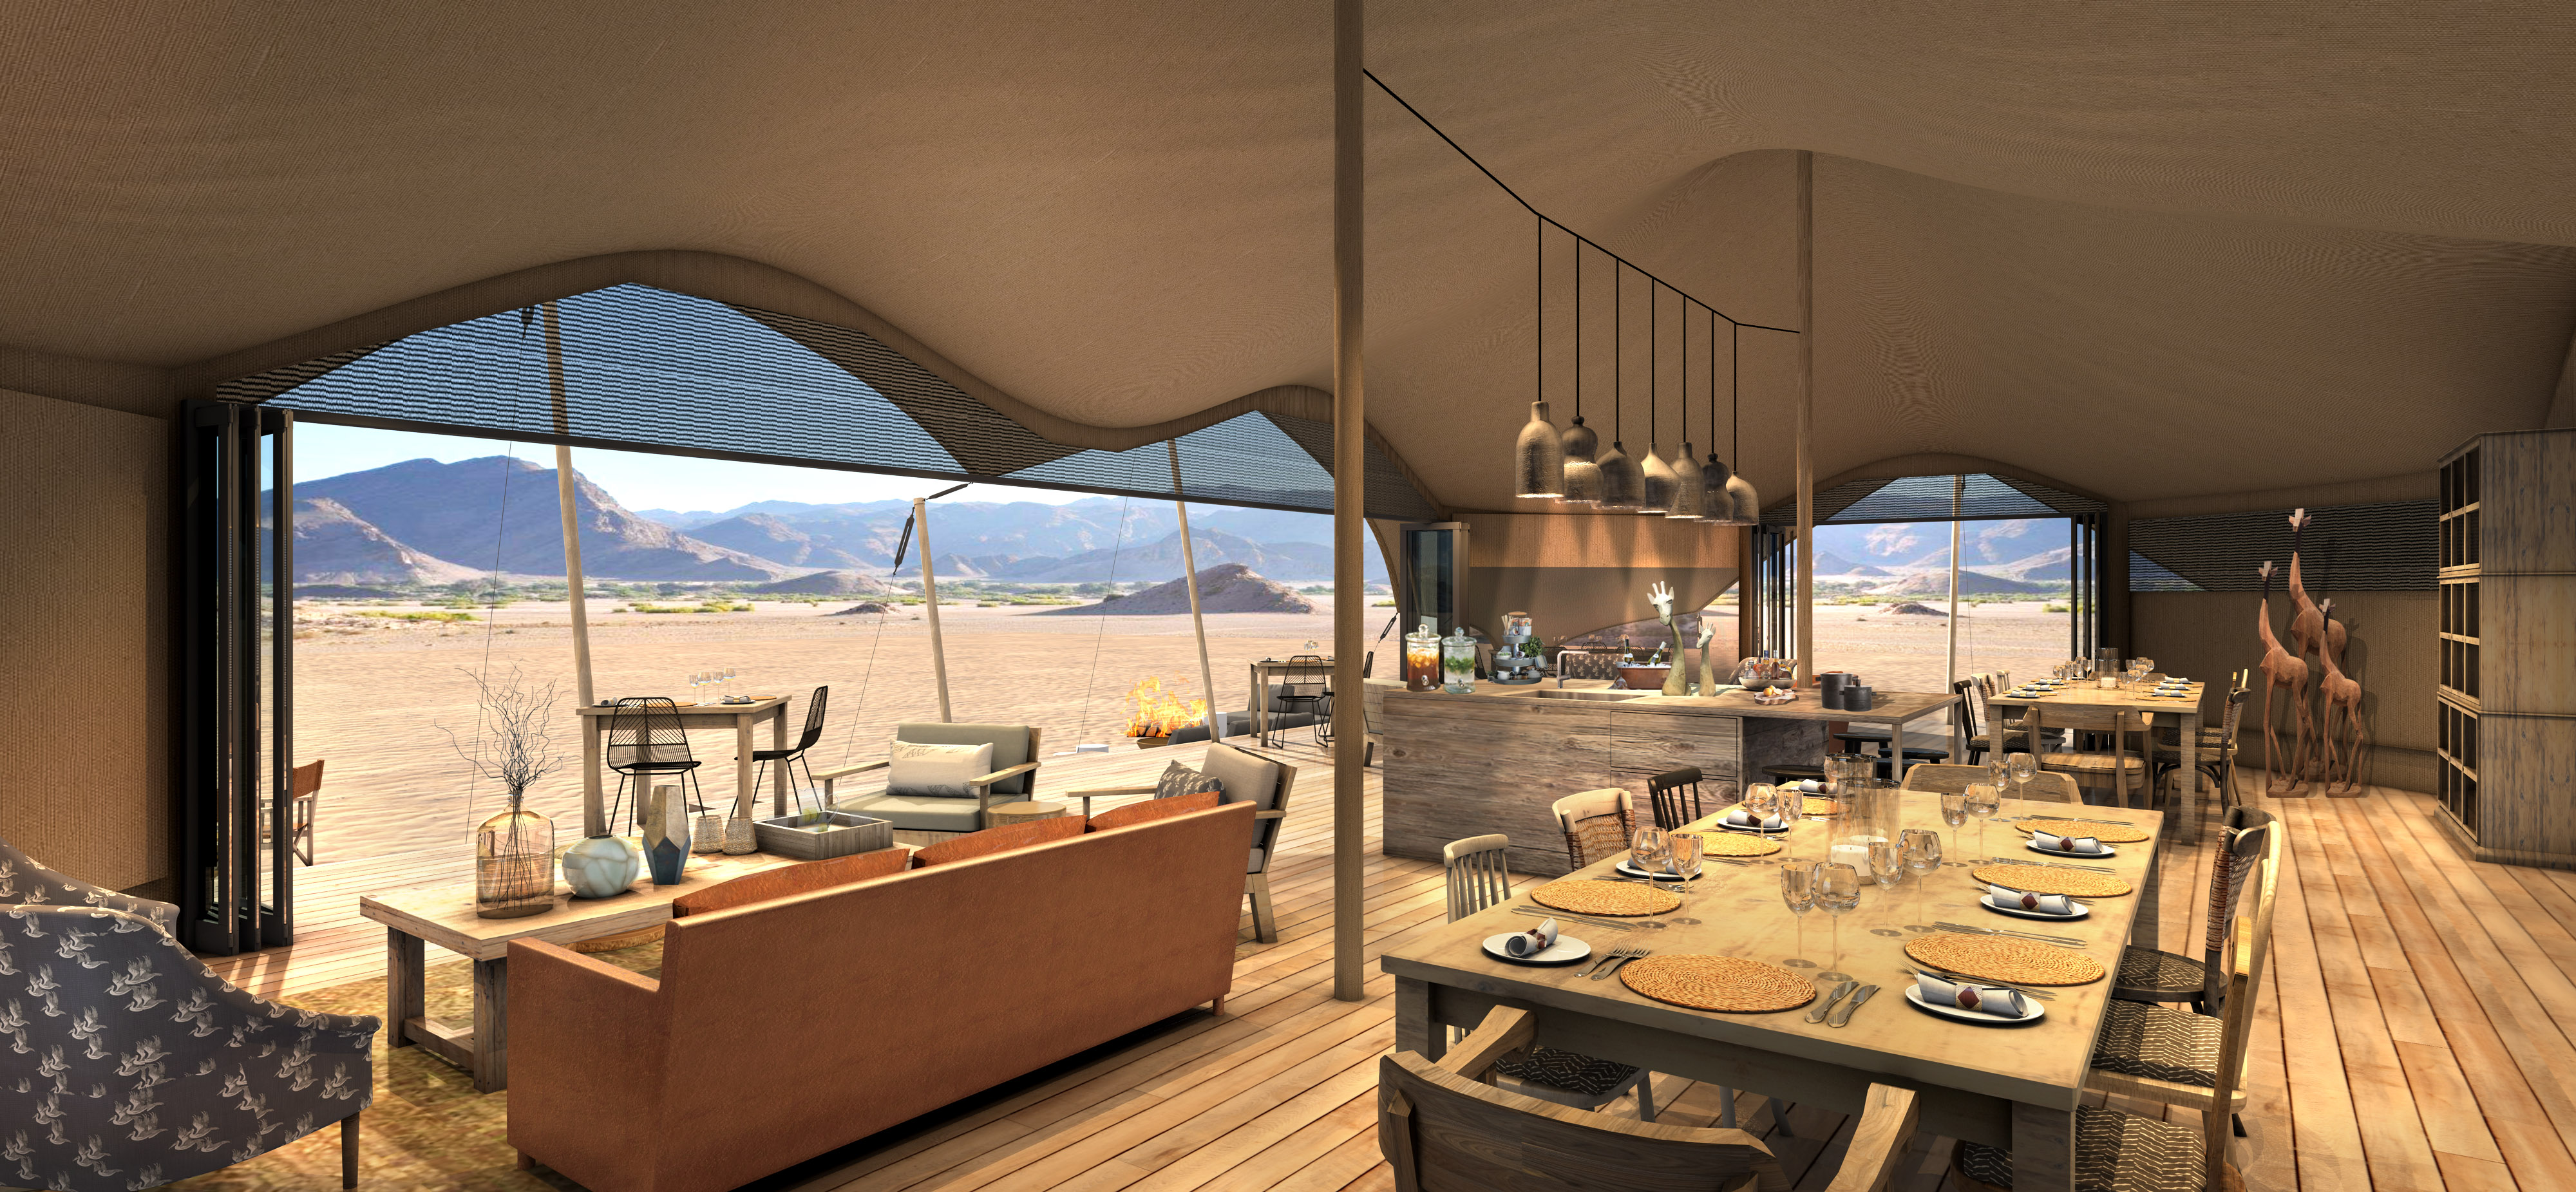 50 New Hotel Openings For 2018 | Africa | Hoanib Valley Camp - Hoanib River Valley, Namibia